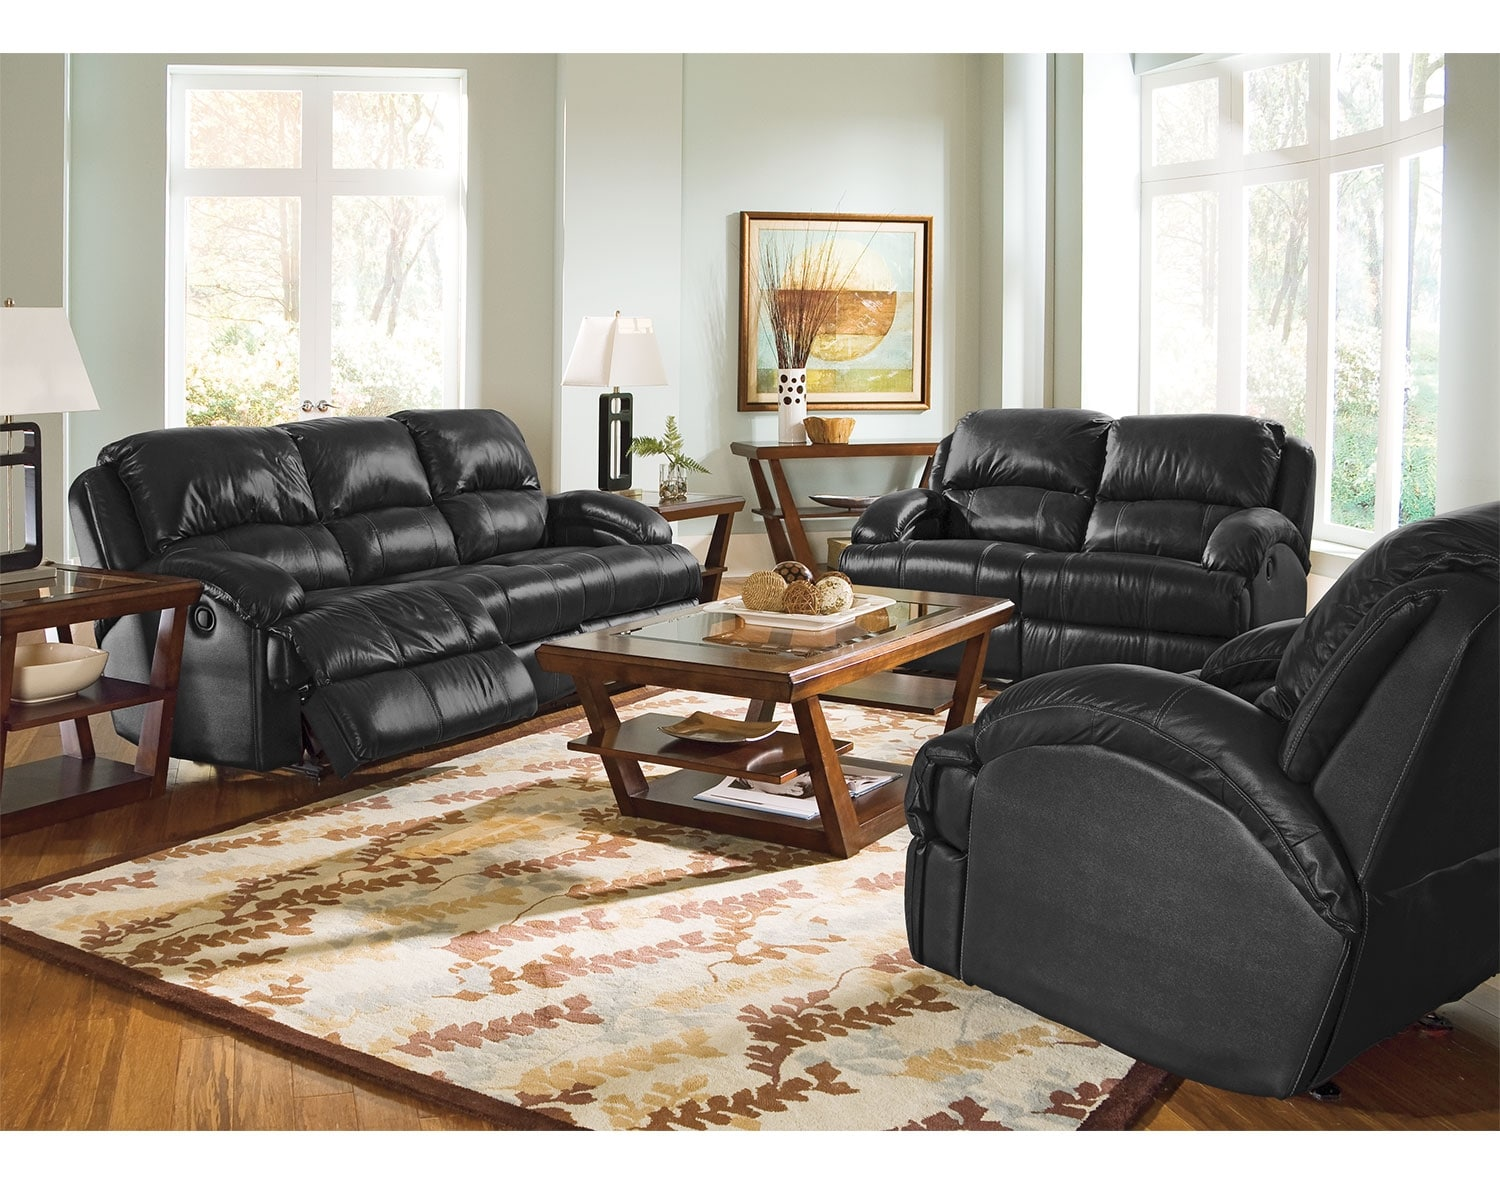 Living Room Furniture - The Easton Black Collection - Reclining Sofa